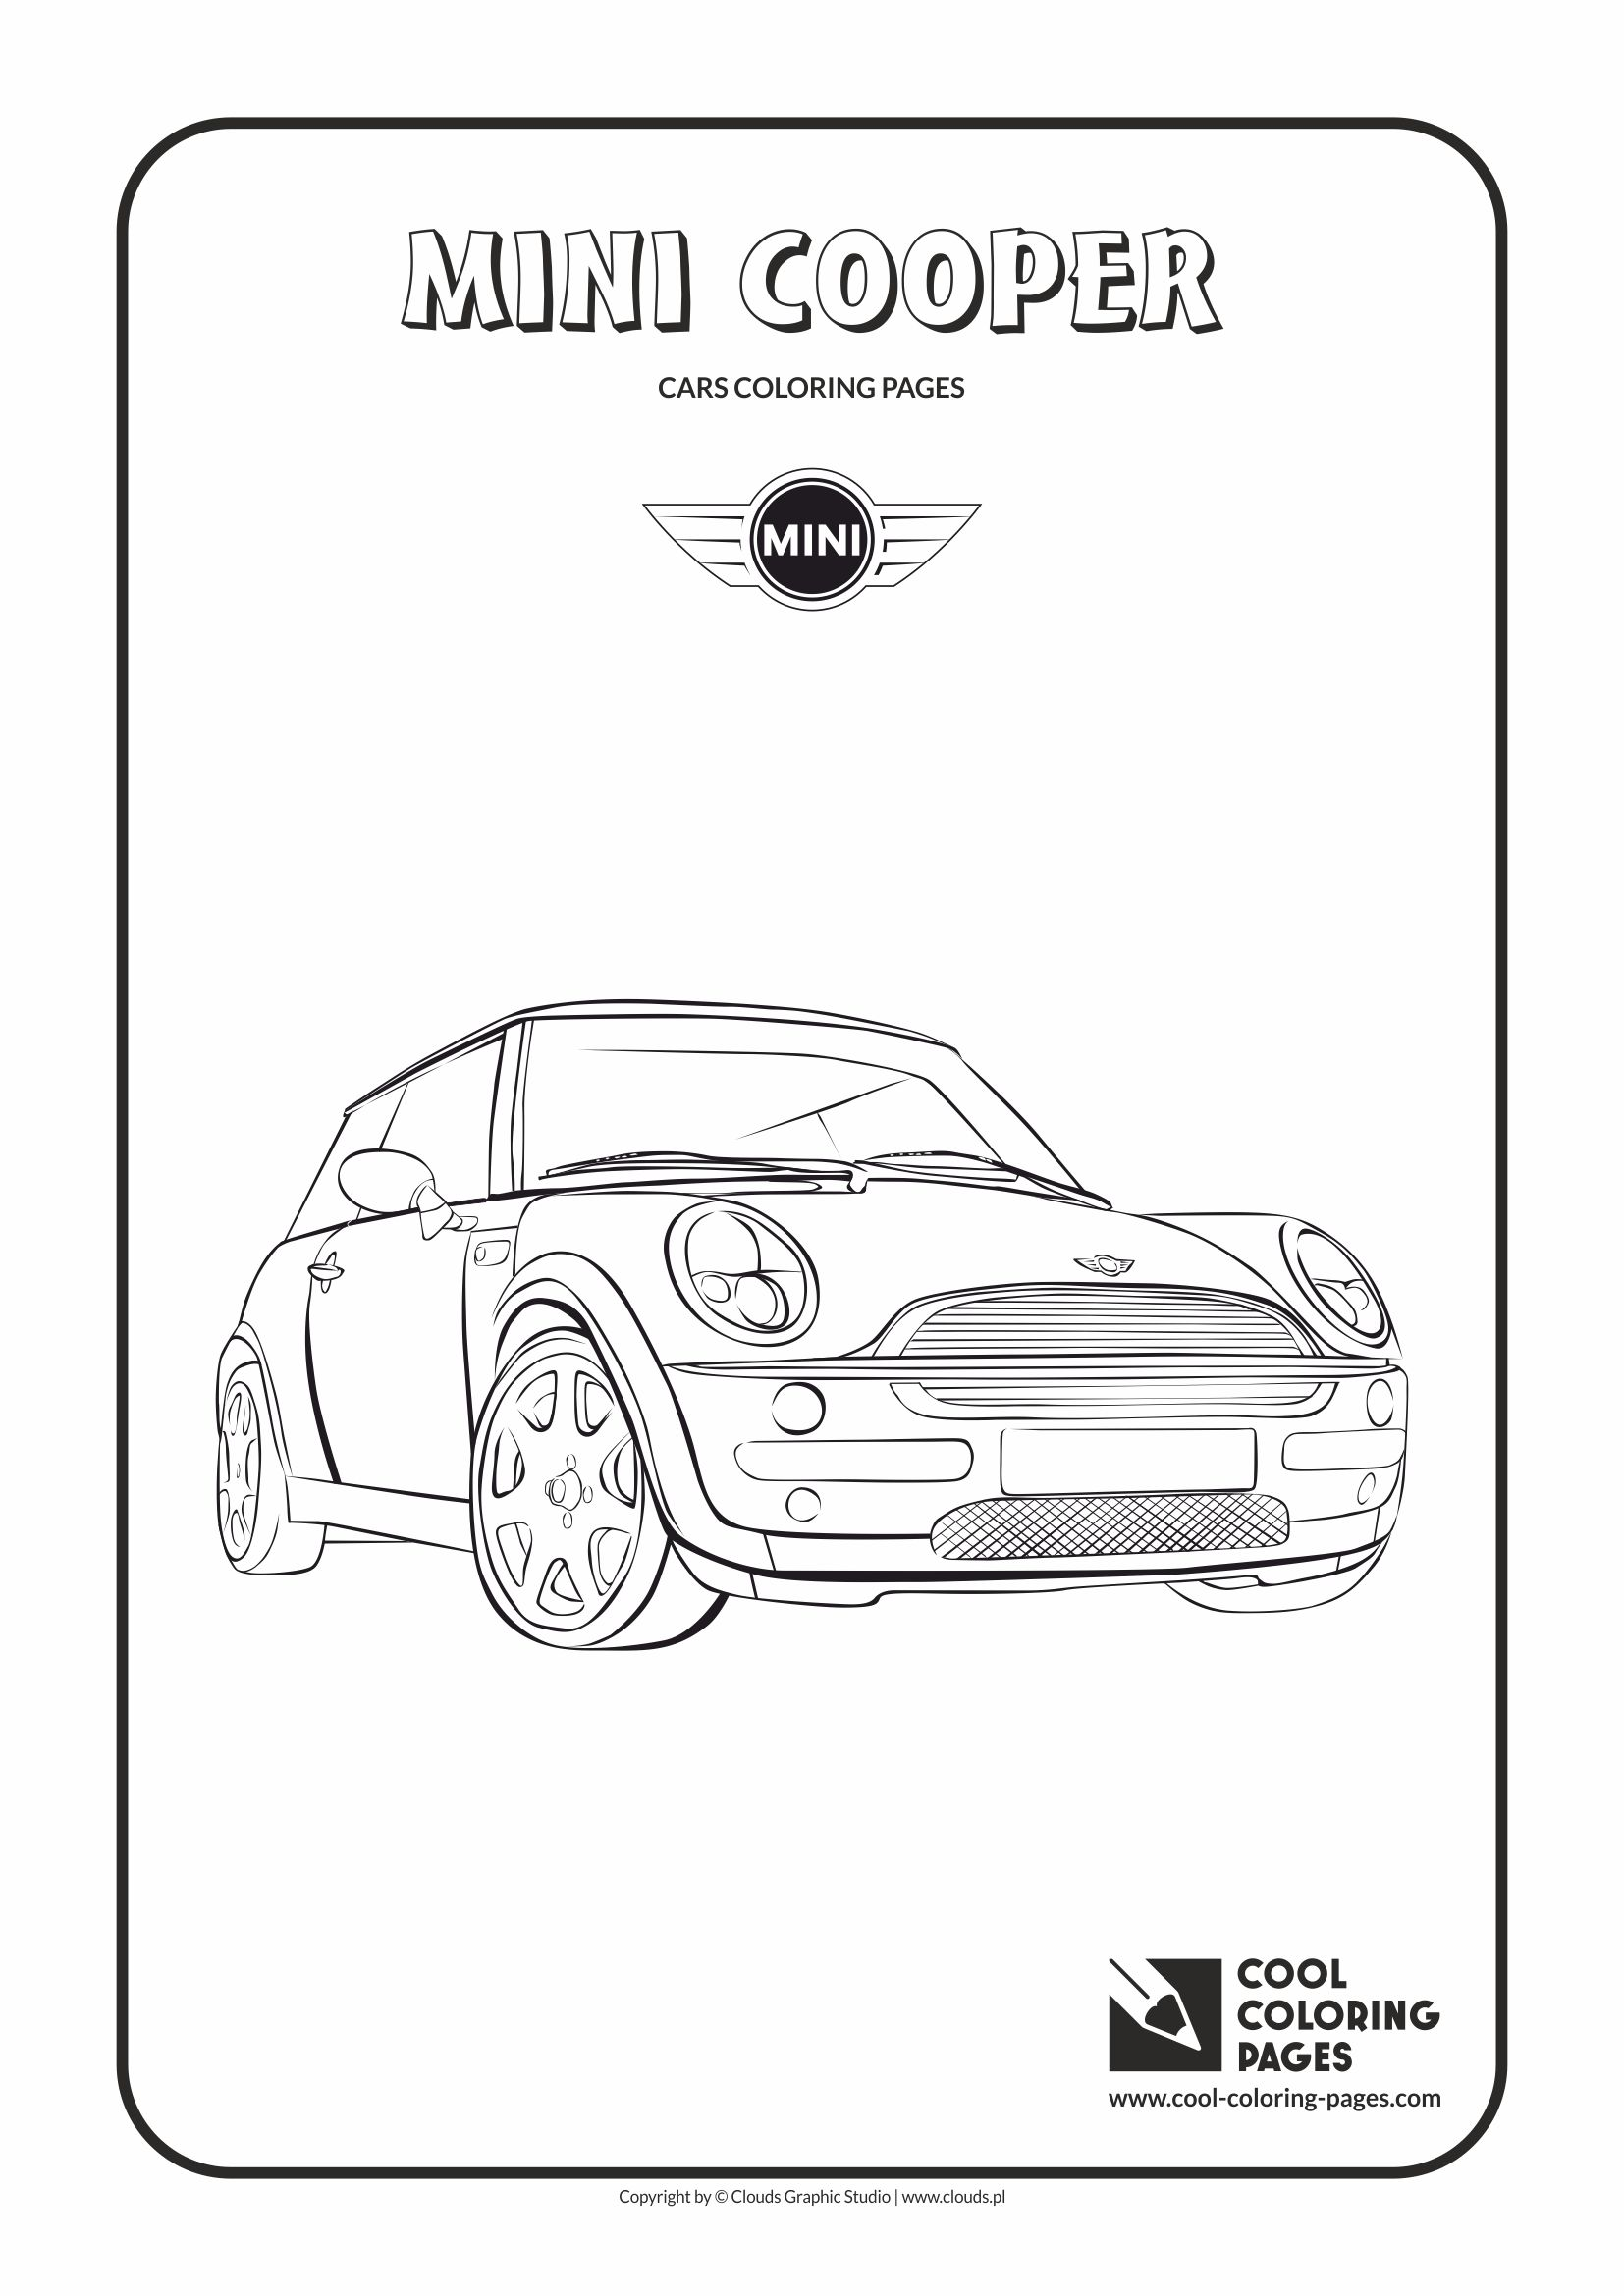 Cool Coloring Pages Mini Cooper Coloring Page